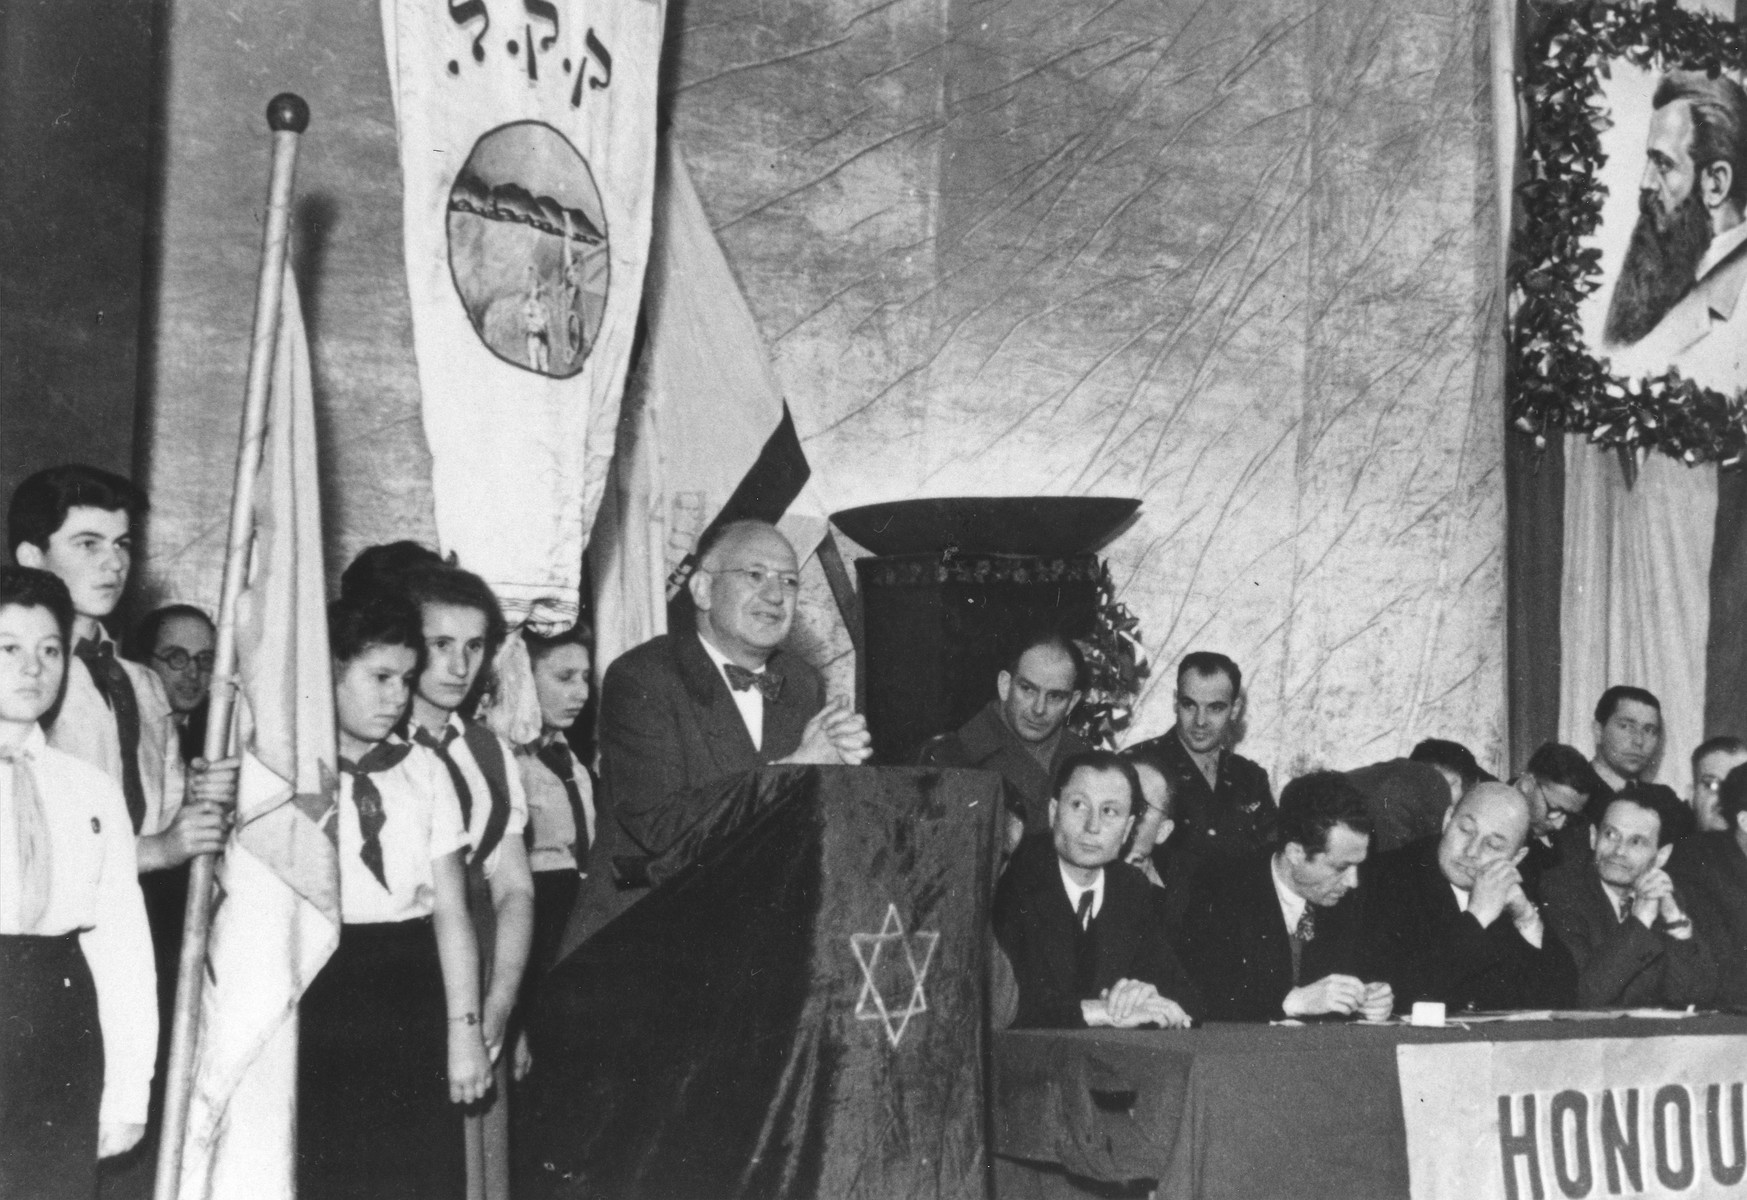 Judge Louis Levinthal, adviser on Jewish affairs to the commander of US forces in Europe, delivers a speech at the Prinzregenten theater in Munich about the partition of Palestine.  The room in decorated with a portrait of Theodore Herzl and a banner of the Jewish National Fund (Keren Kayemet).